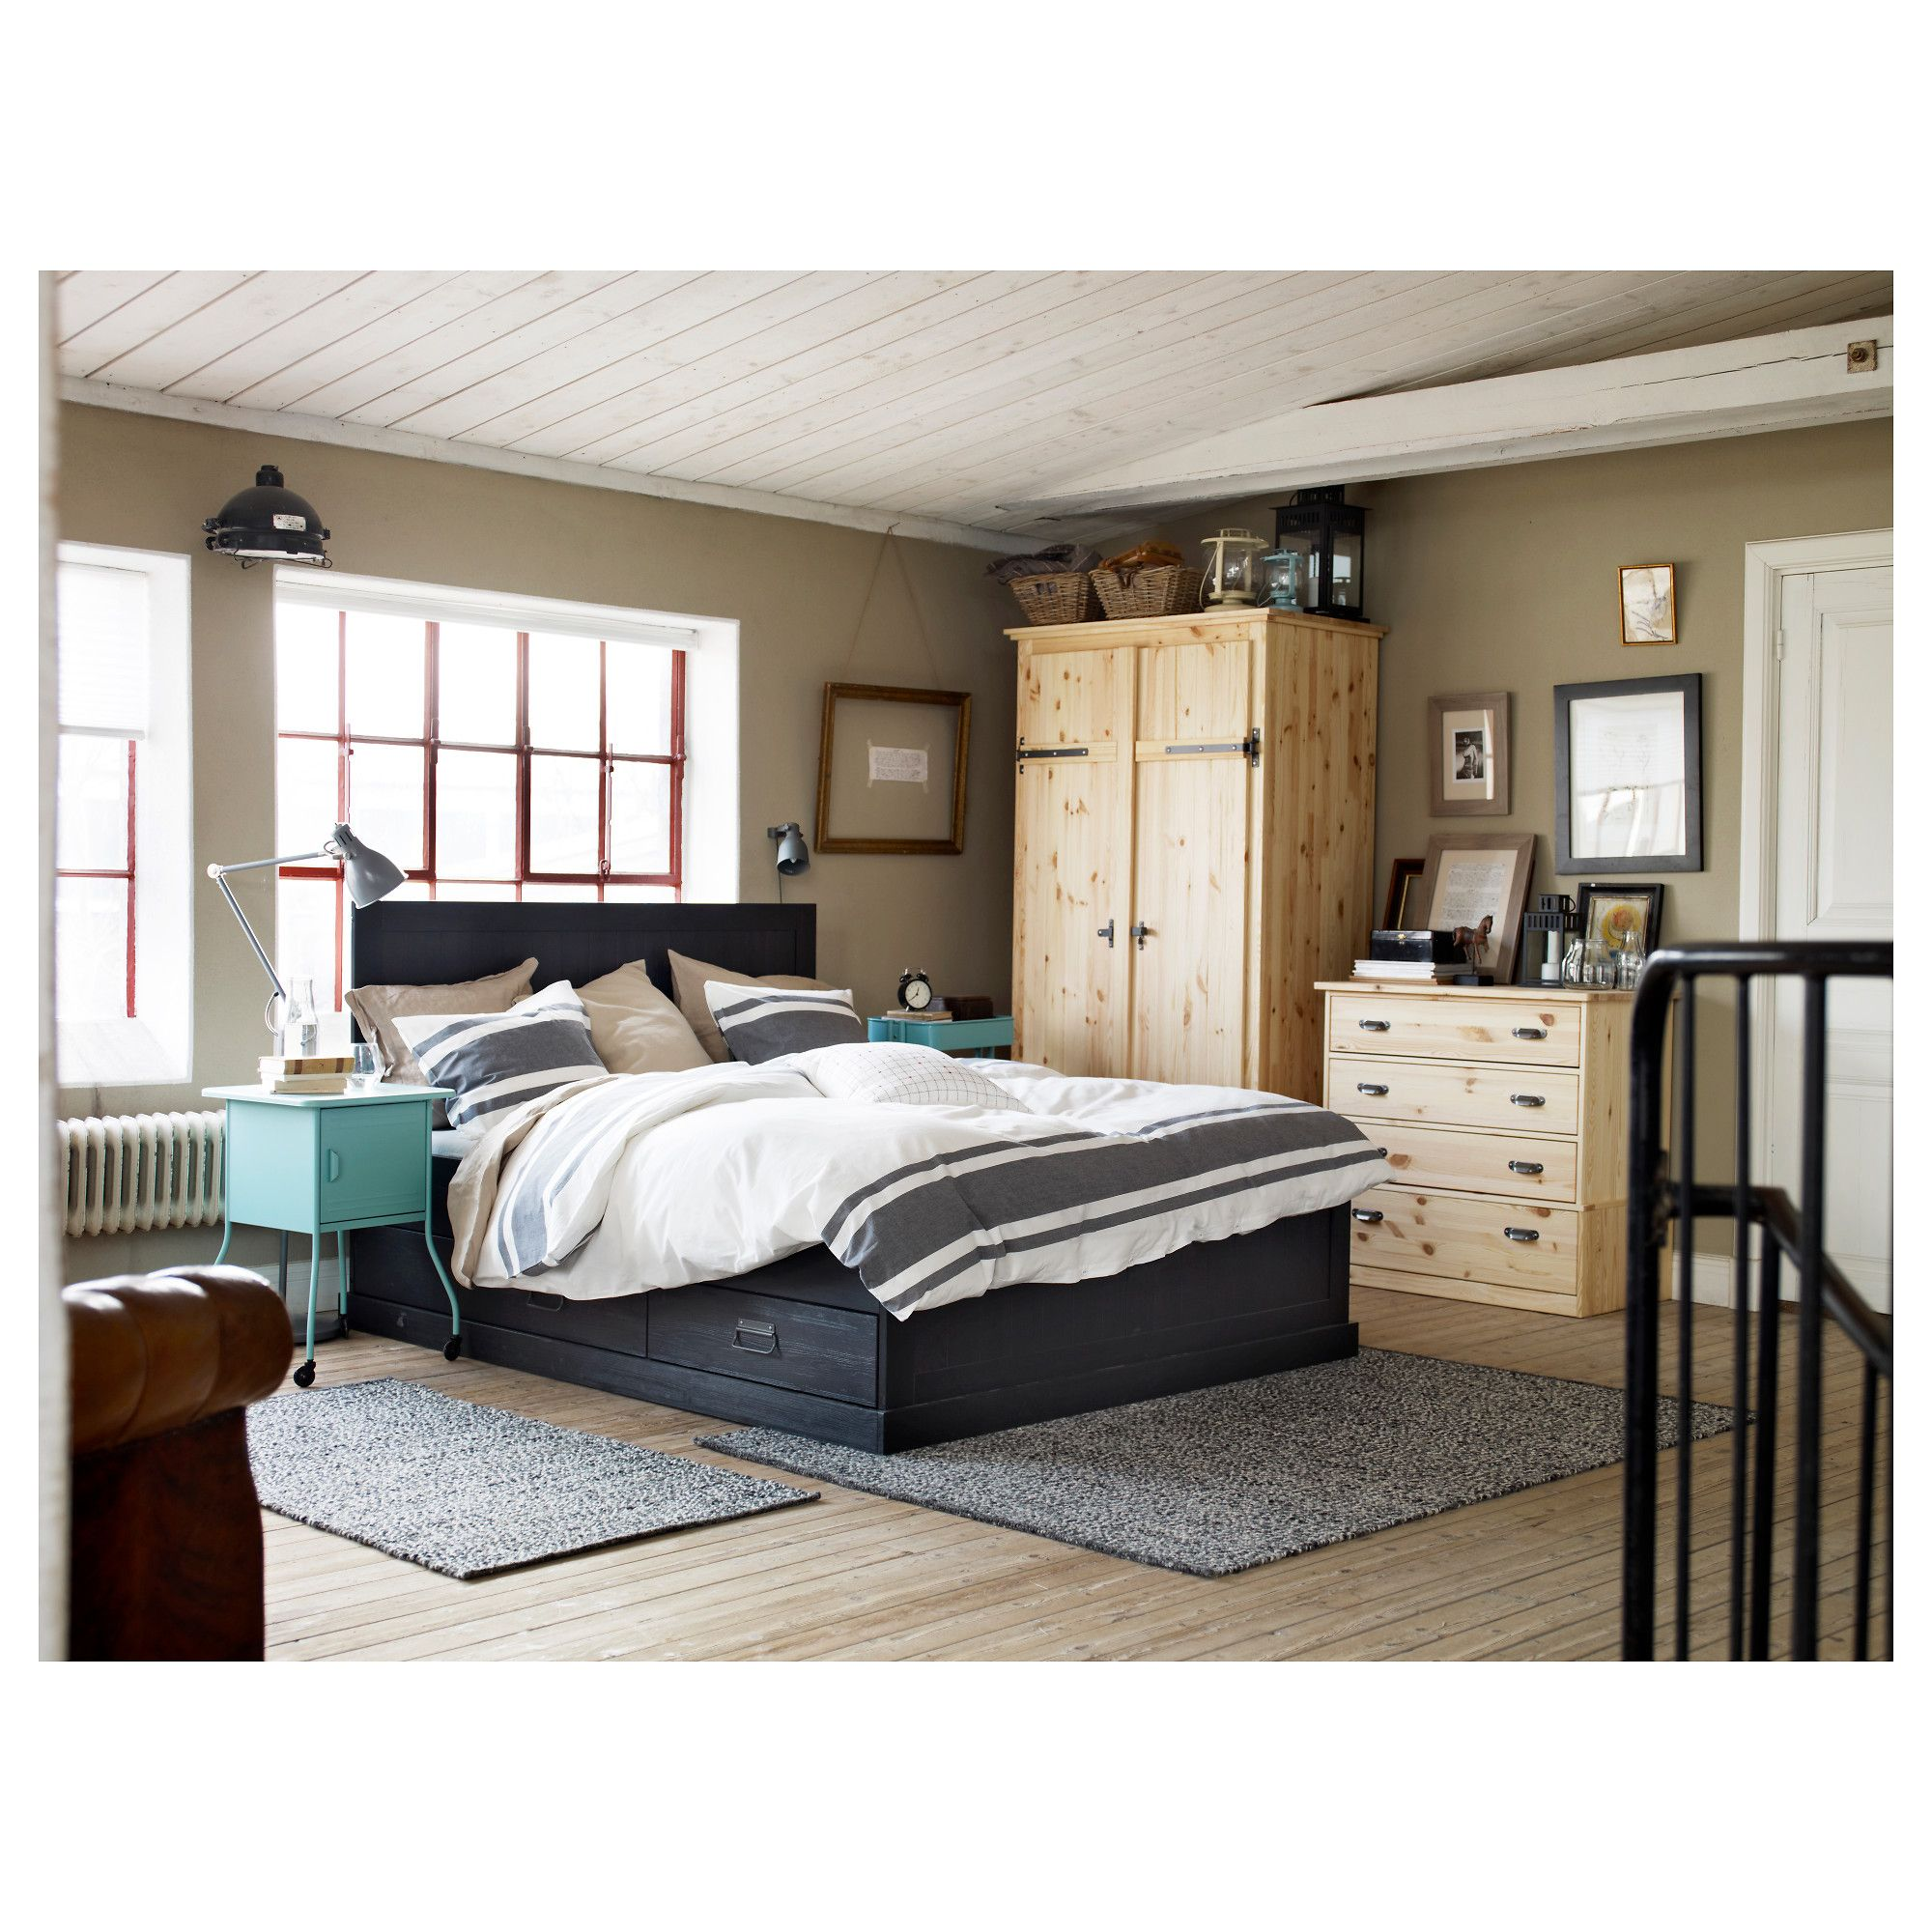 IKEA FJELL Bed frame with storage